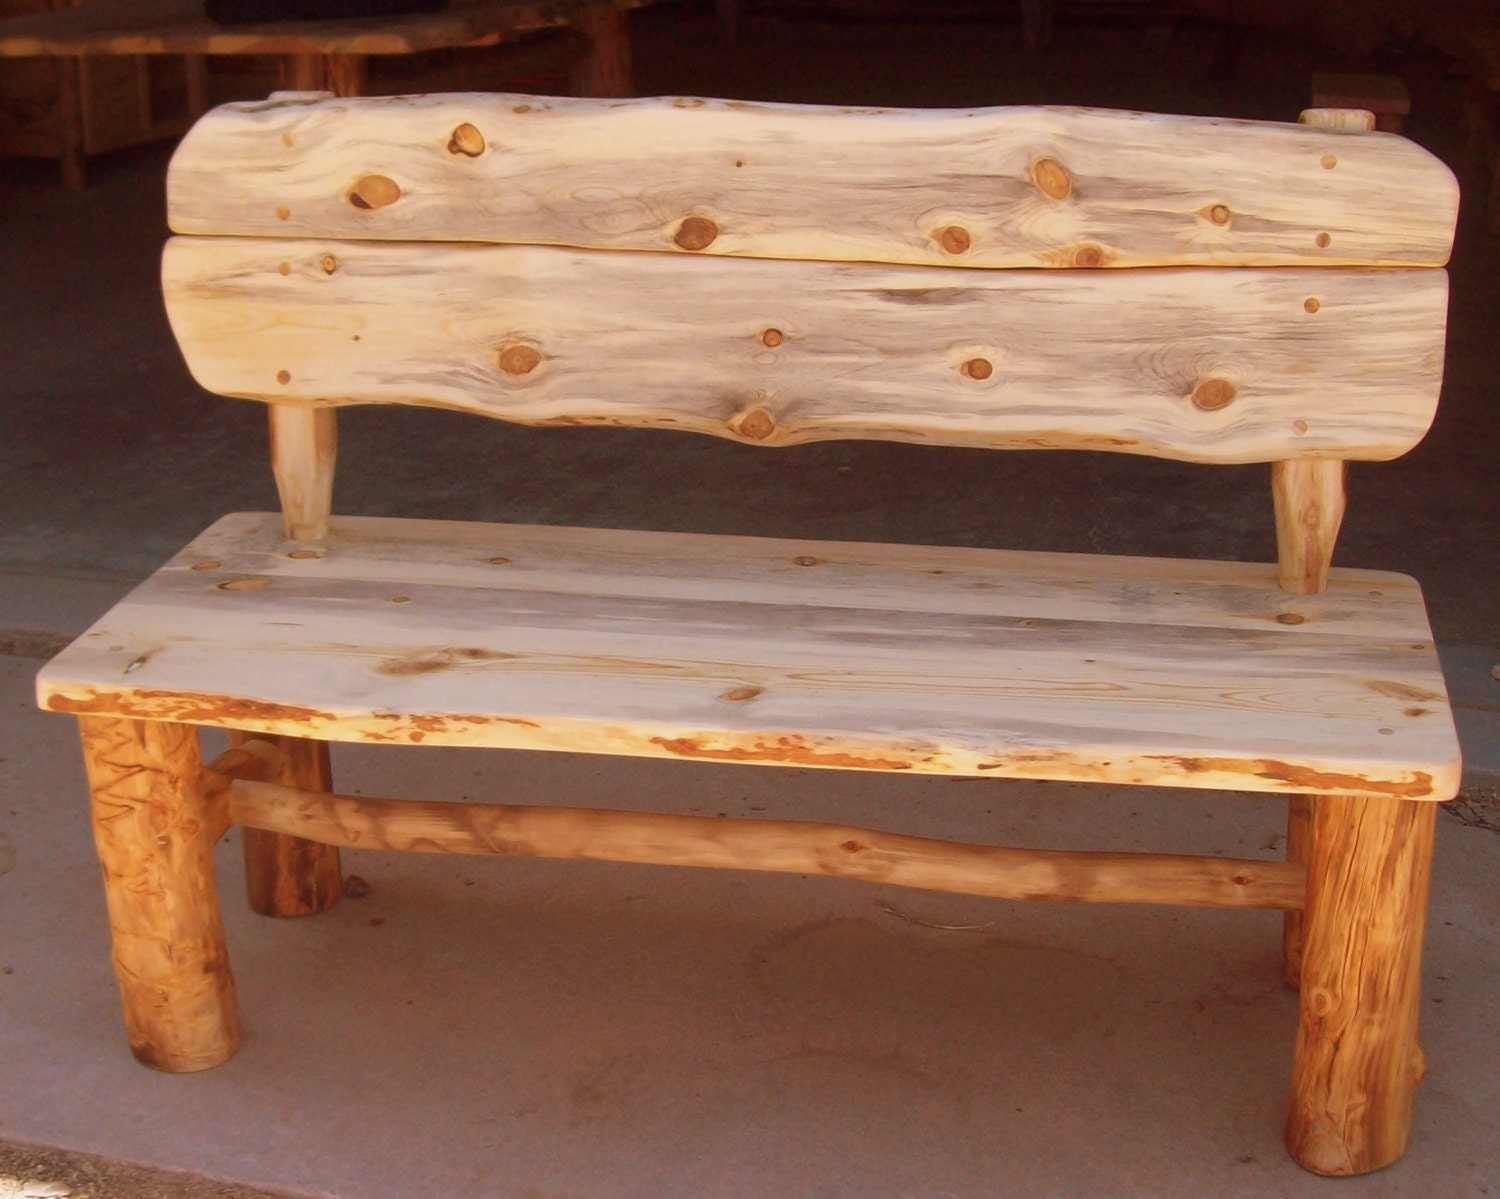 How to make rustic wood furniture design ideas